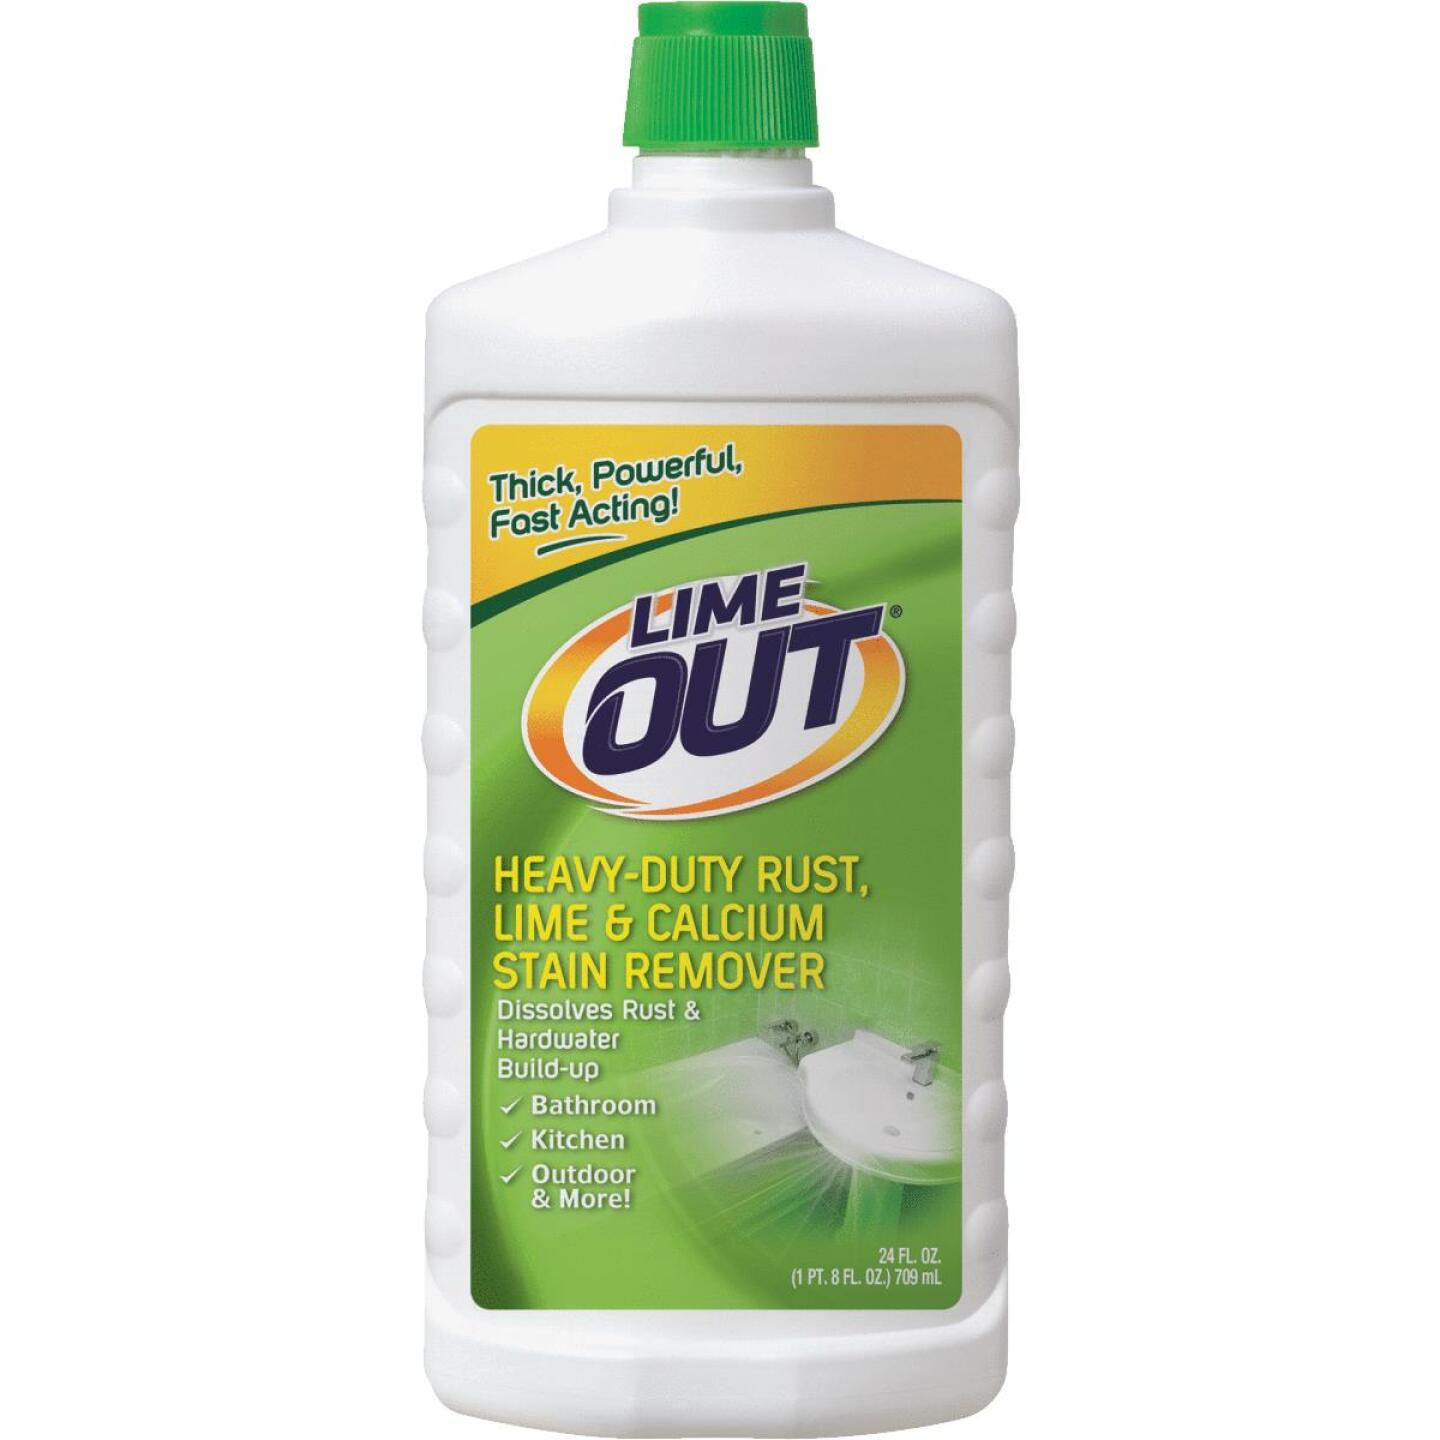 Lime Out 24 Oz. Lime & Rust Remover Image 1